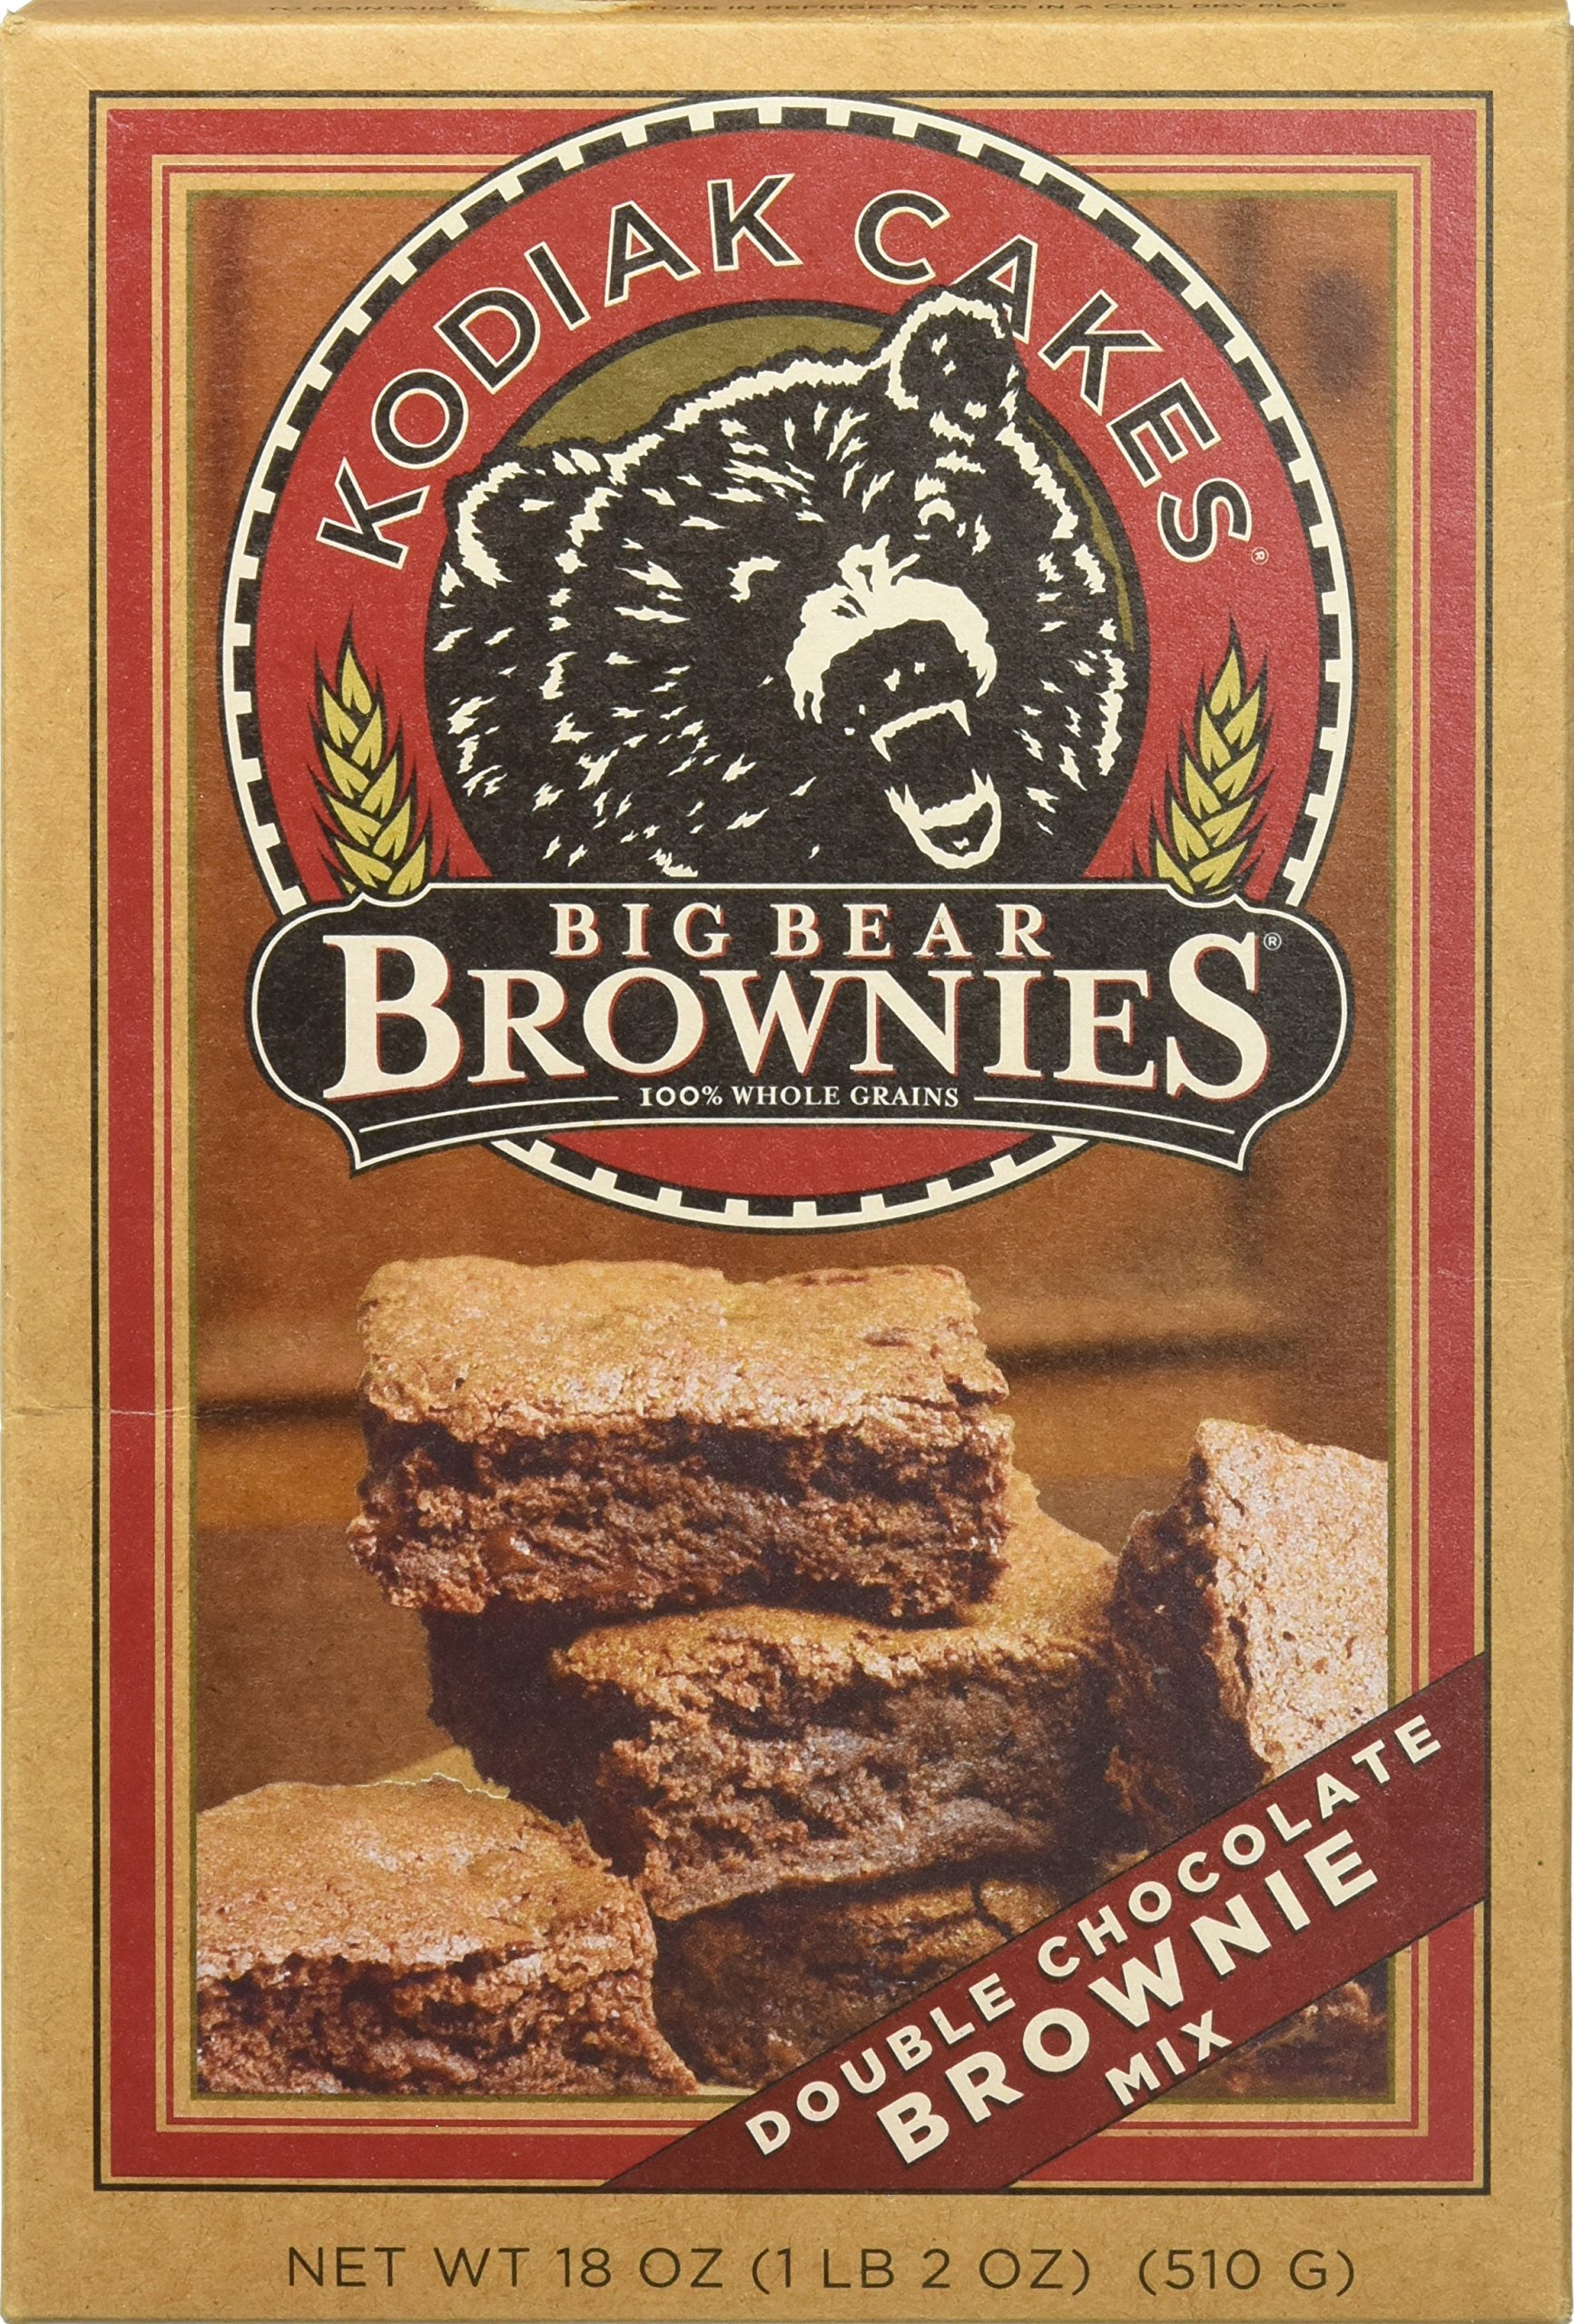 Kodiak Cakes Big Bear Brownie Mix, Double Chocolate Chunk, 18-Ounce Box